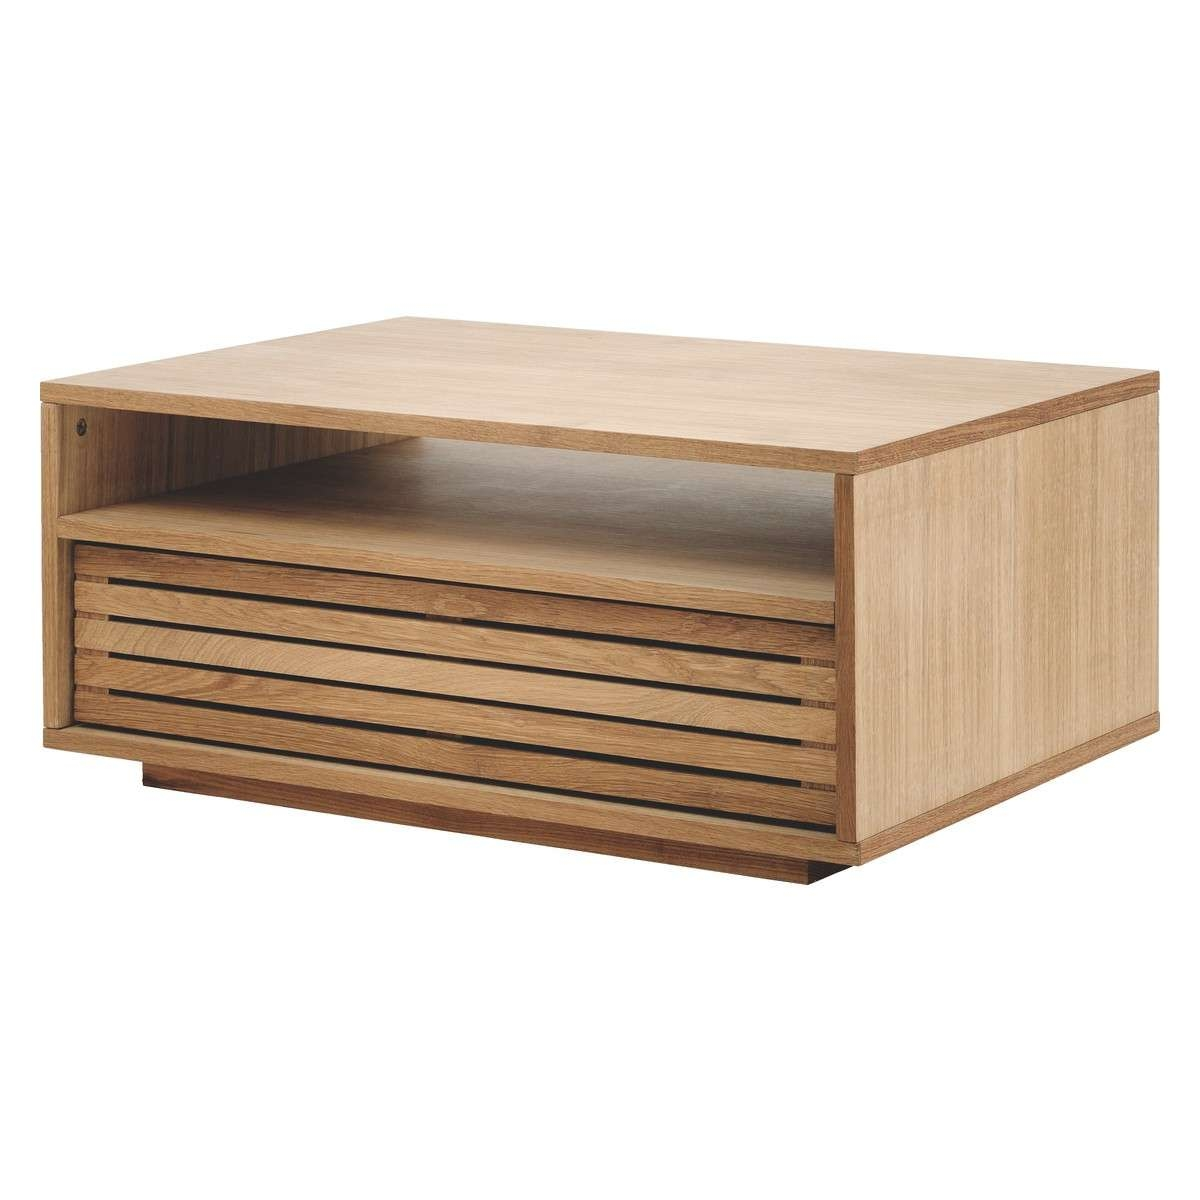 Buy Now At Habitat Uk In Most Recent Oak Coffee Tables With Storage (View 1 of 20)